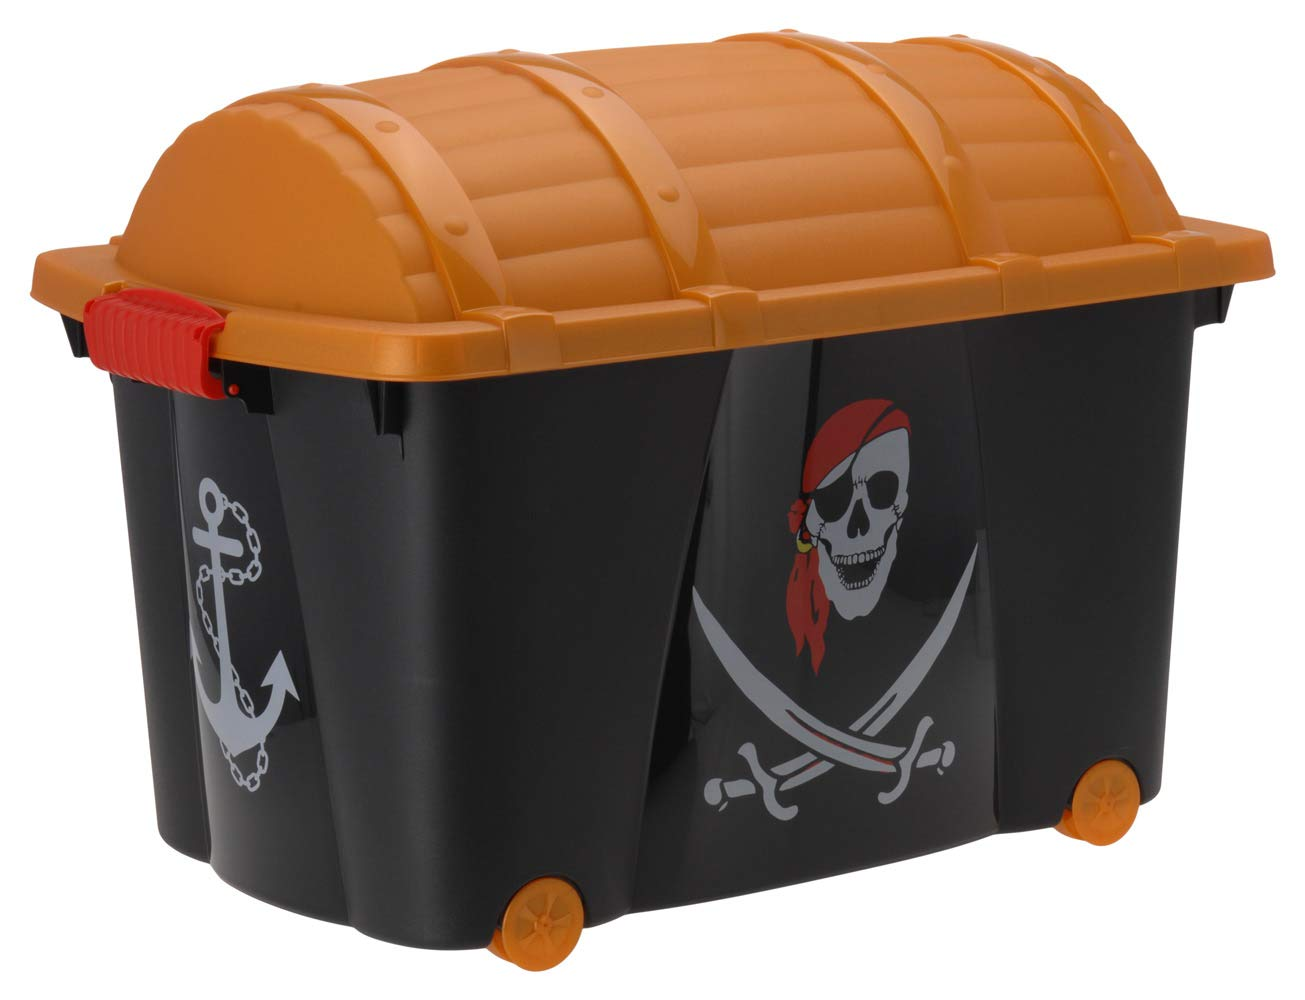 EMAKO Storage box pirata petto cassettiera su ruote Pirate Toy Storage box 57 l